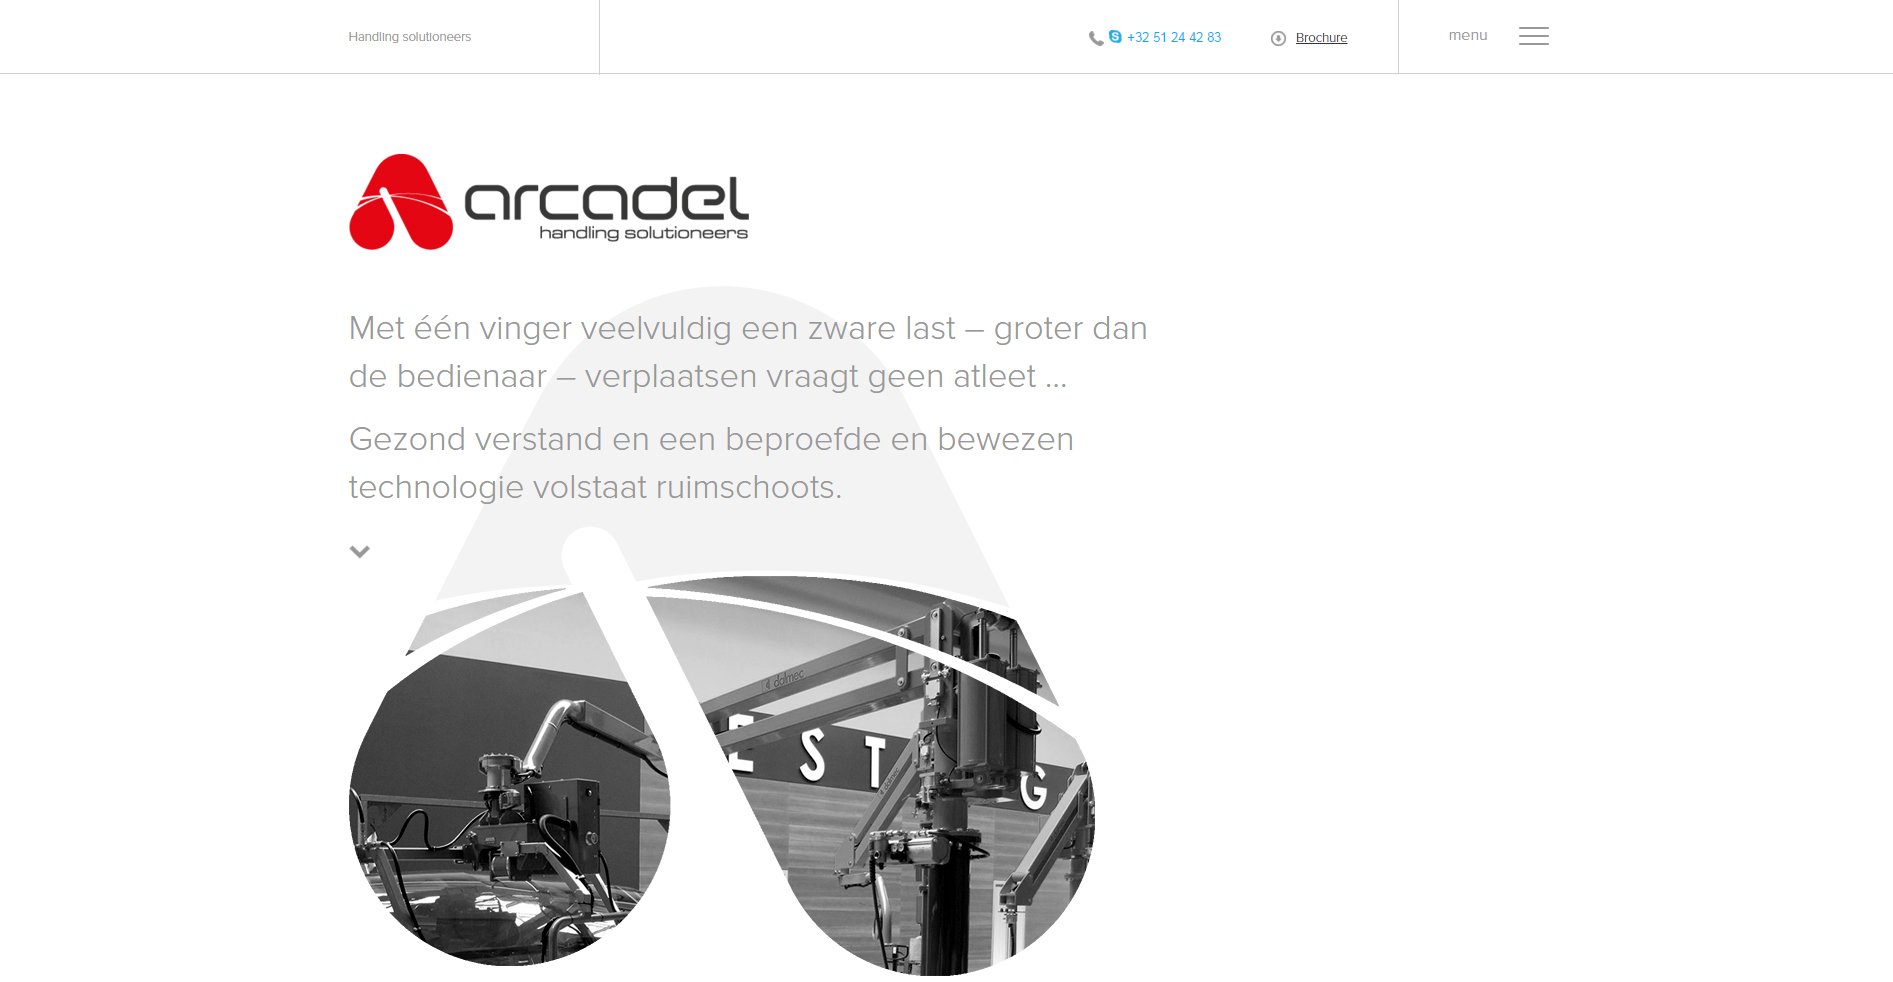 Arcadel website screenshot